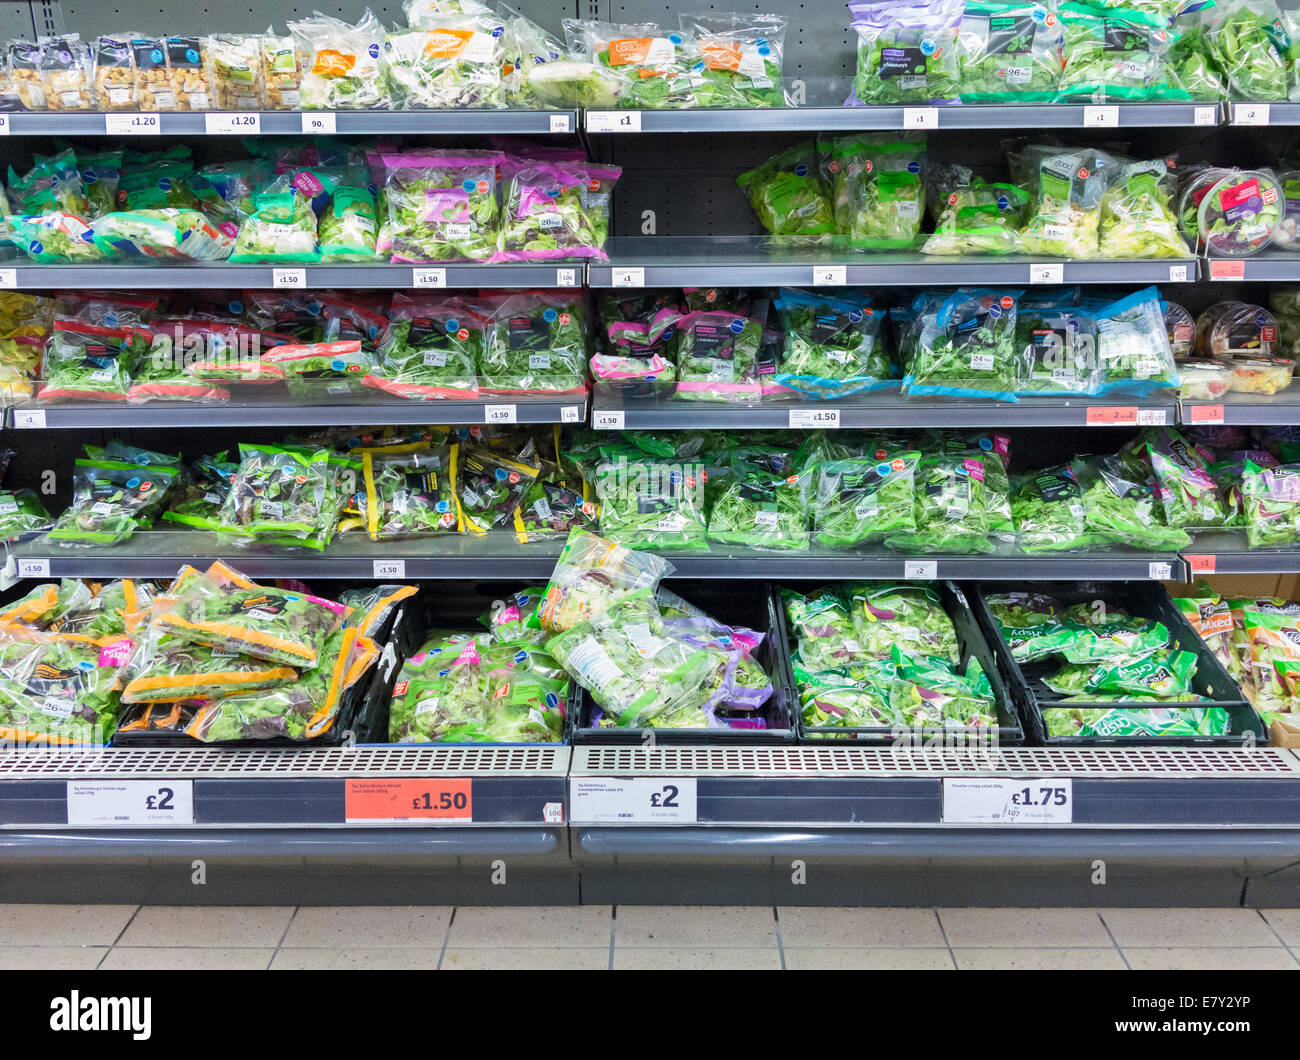 Bagged salads for sale in a supermarket, UK - Stock Image